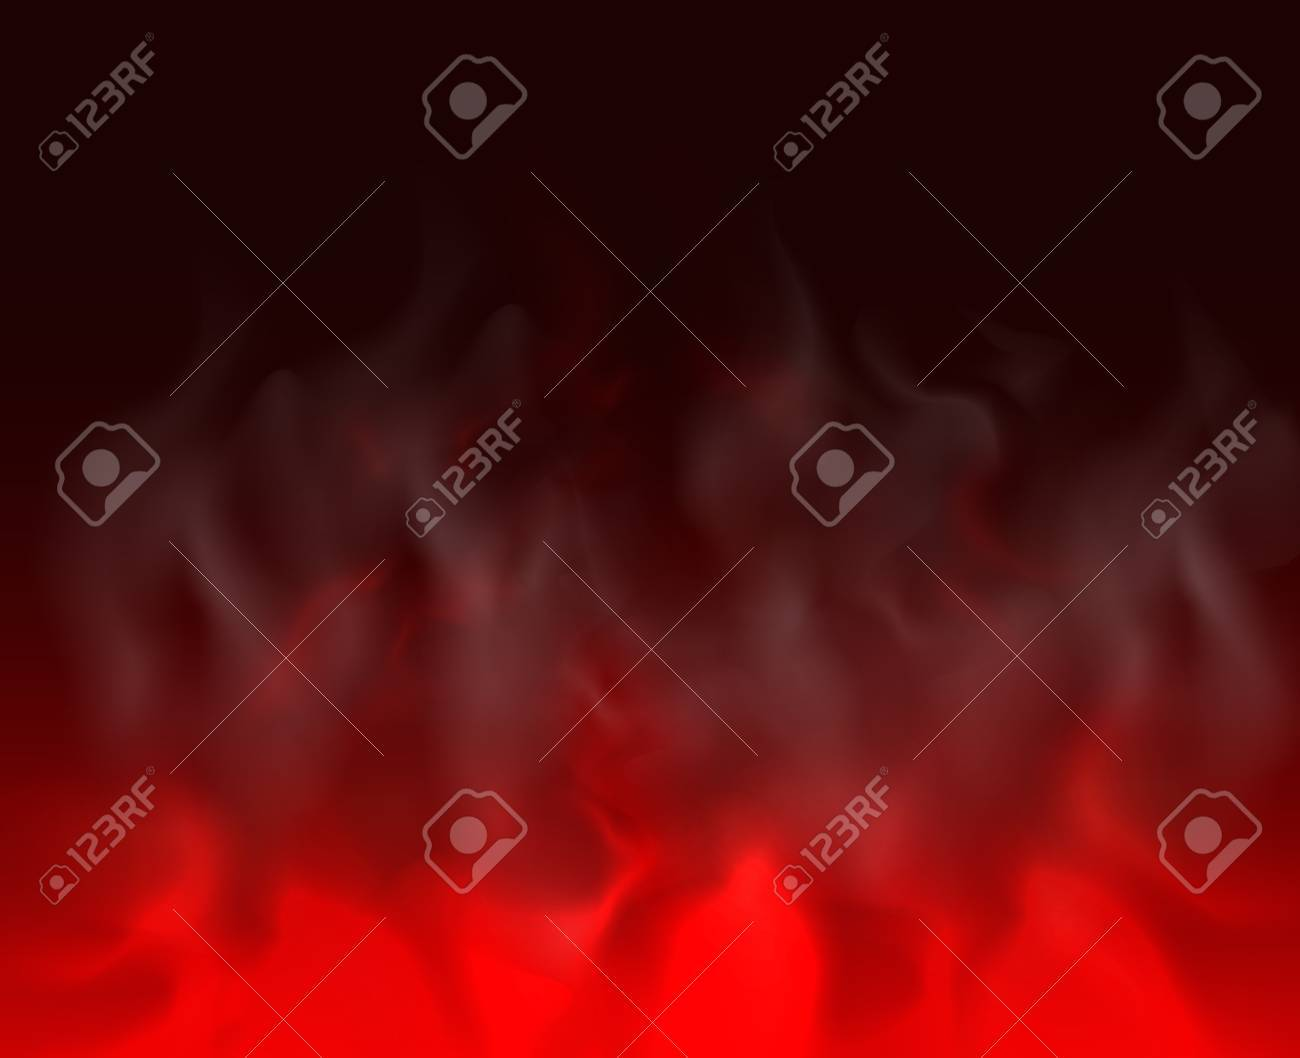 red Cloud and smoke on black backgrounds abstract unusual illustration - 49902678